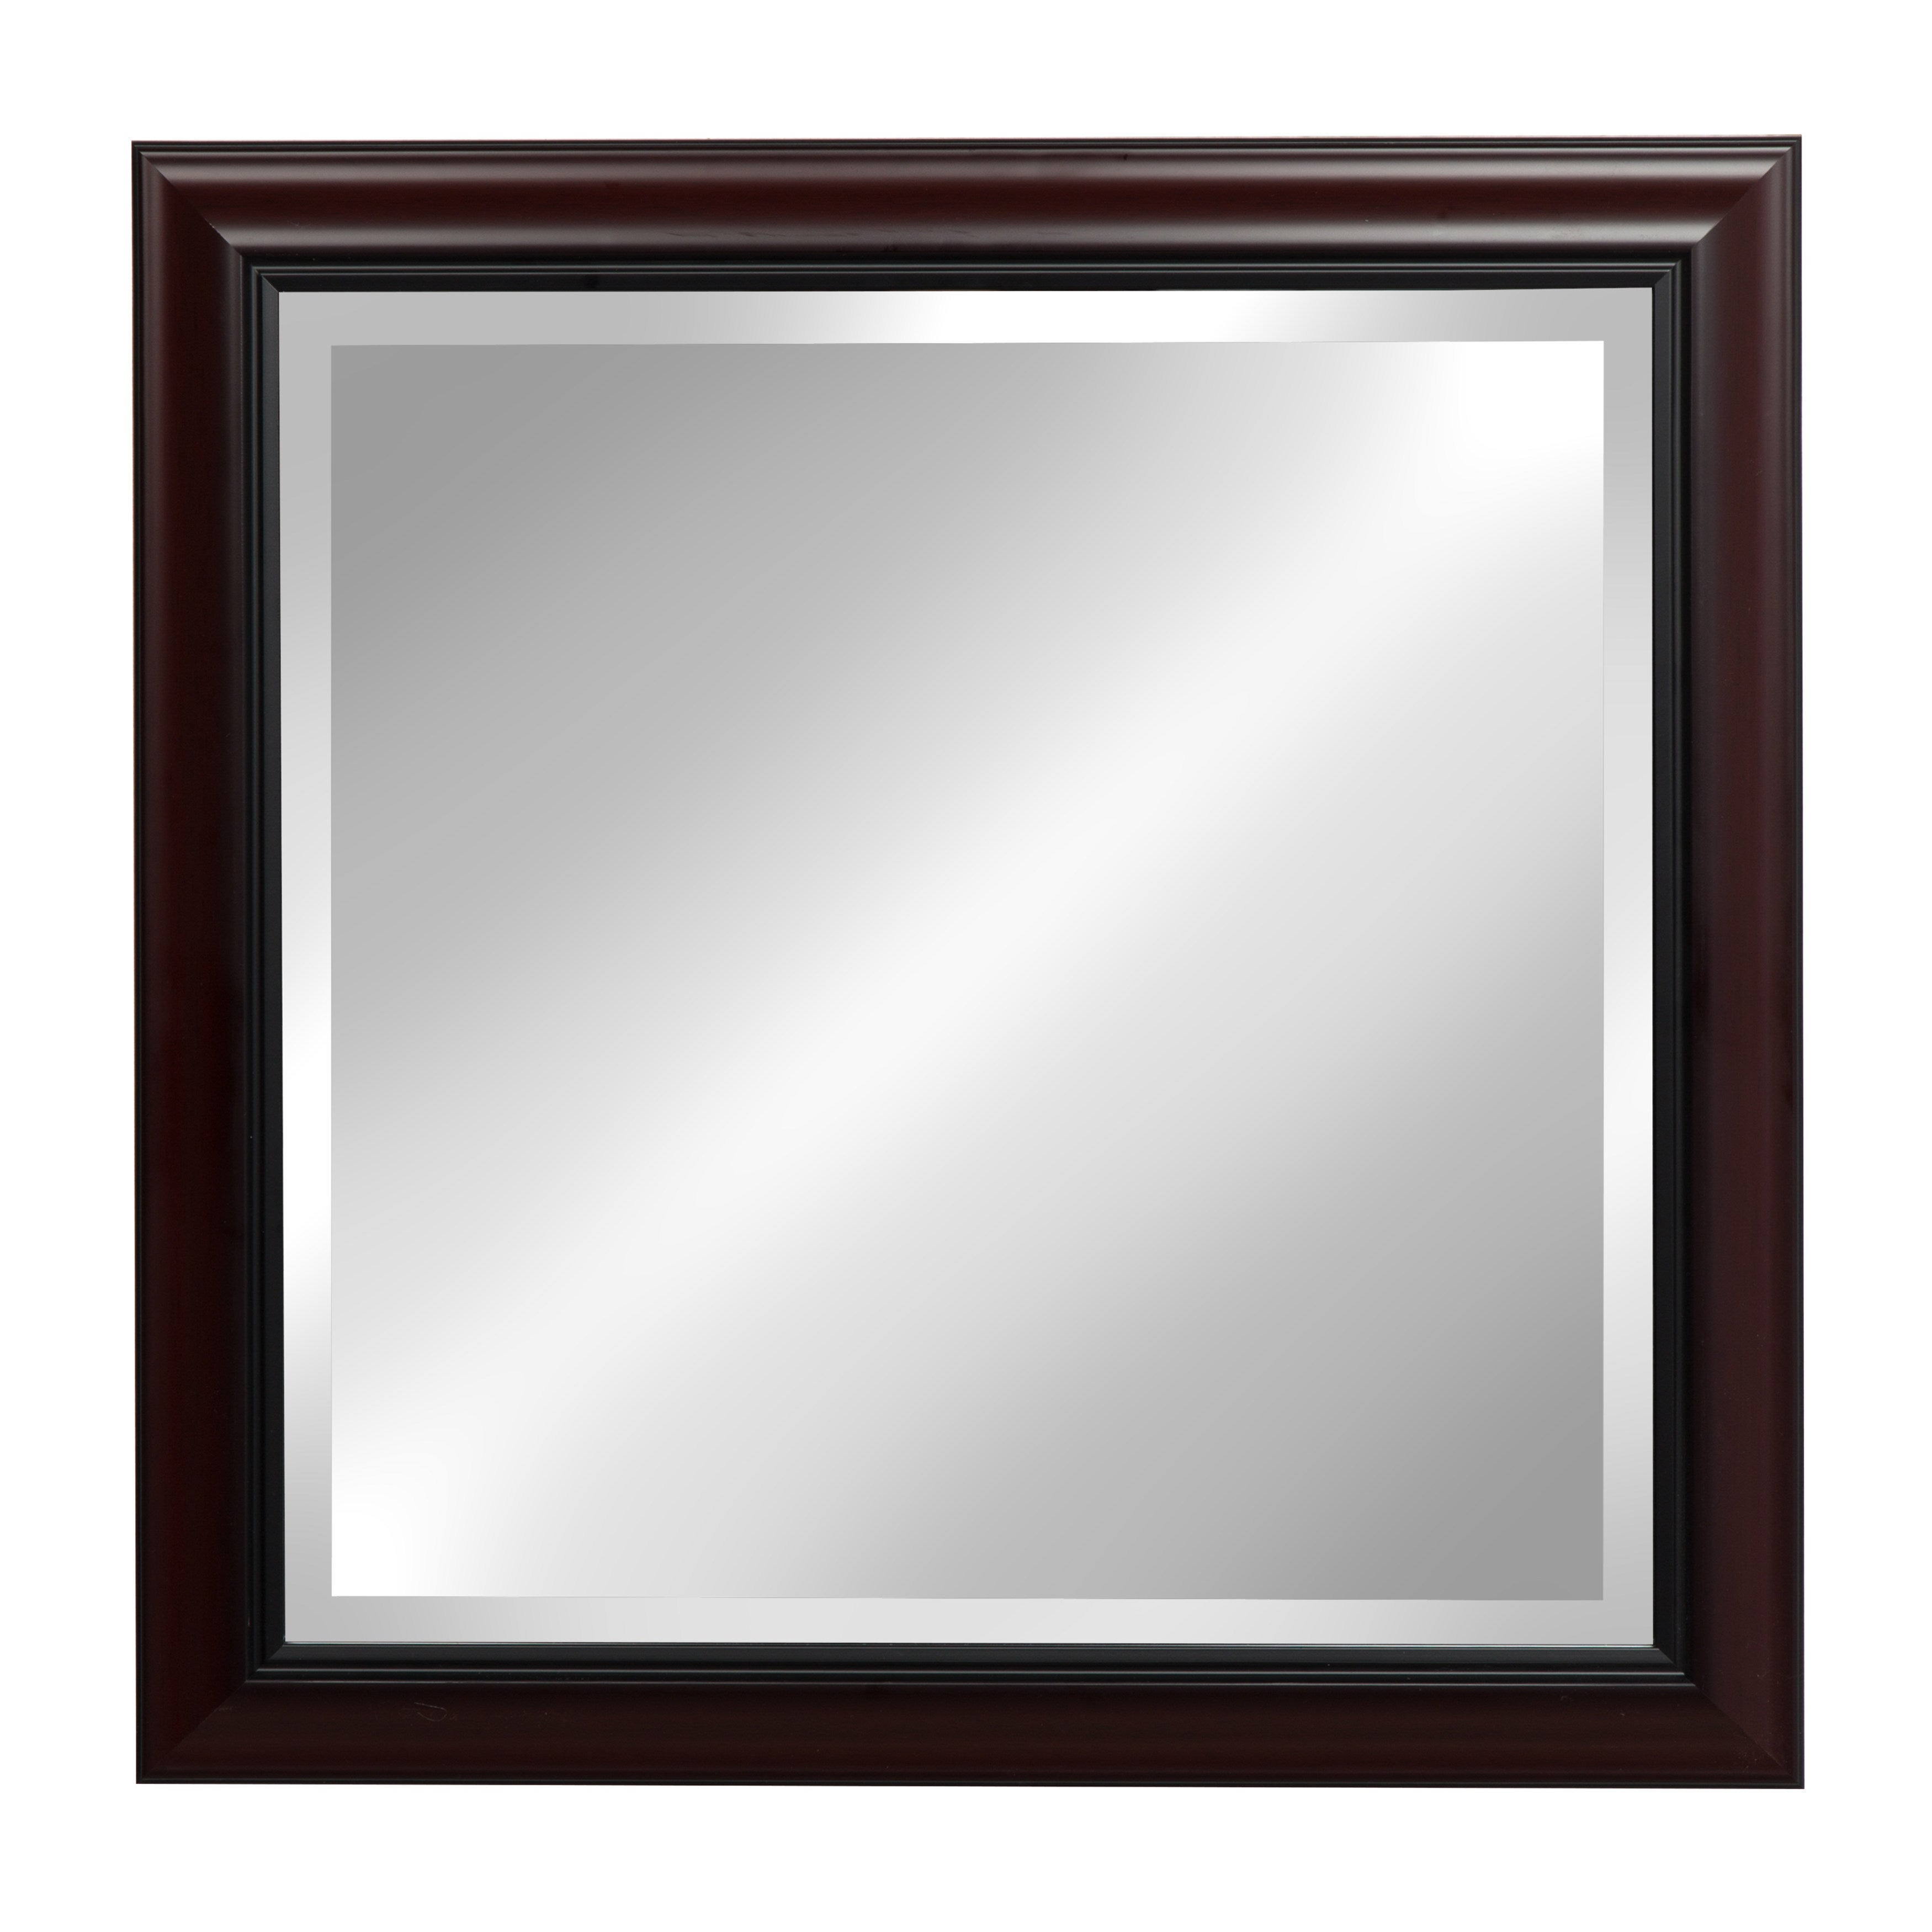 Shop Designovation Dalat Cherry Framed Beveled Wall Mirror Free